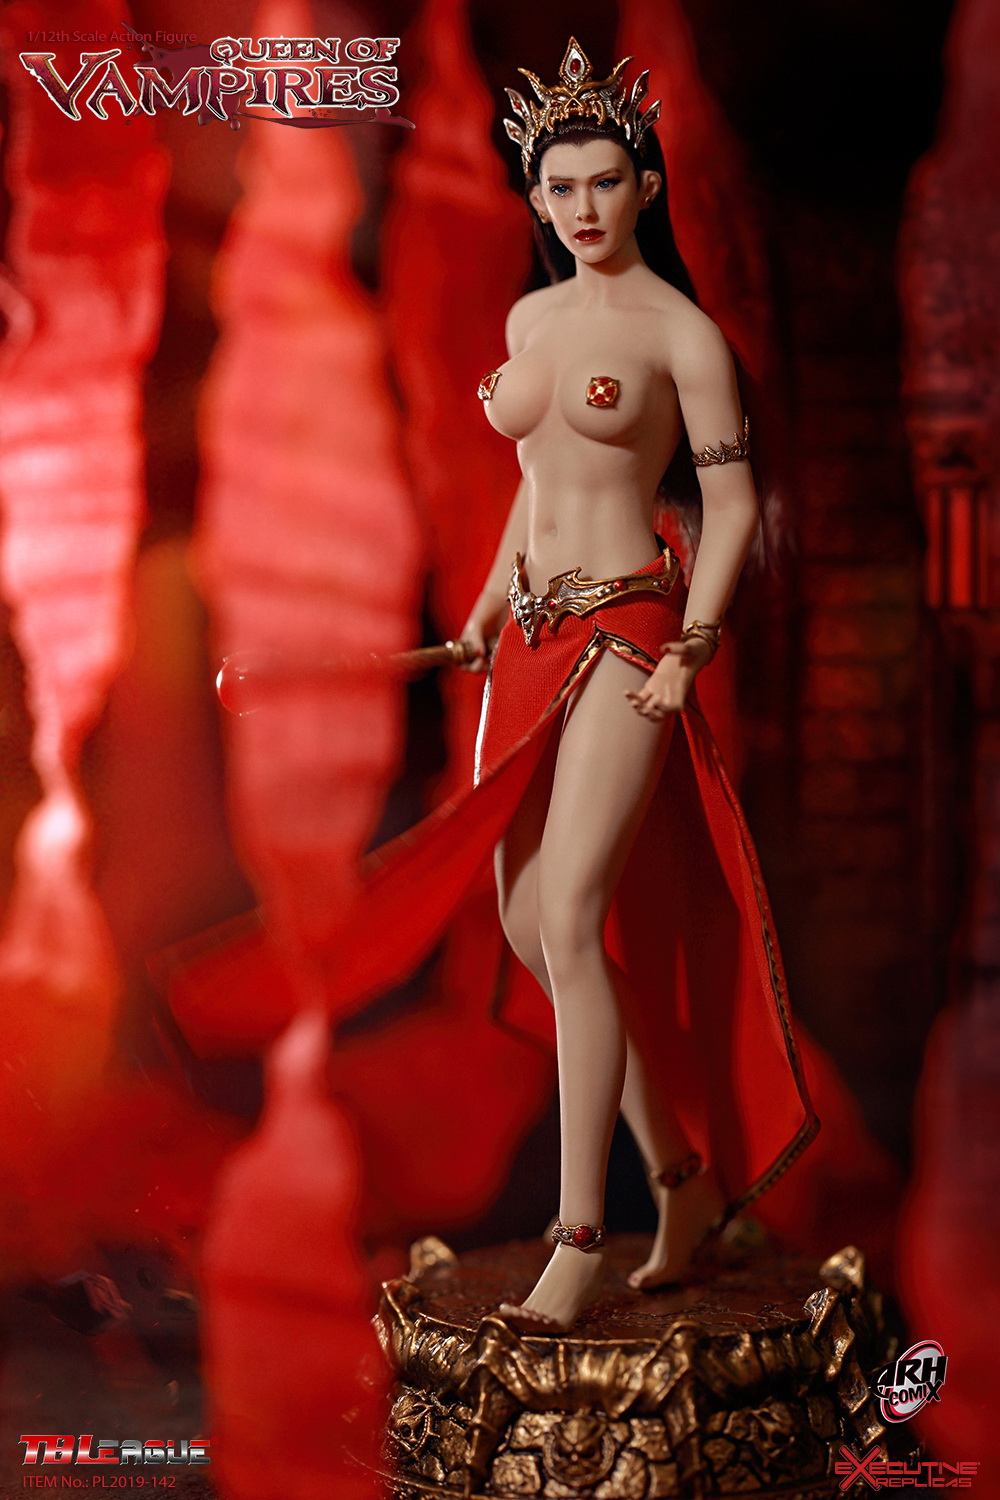 tbleague - NEW PRODUCT: TBLeague: The first 1/12 movable doll - Arkhalla Queen / Bloodsucking Queen (PL2019-142) 20000110